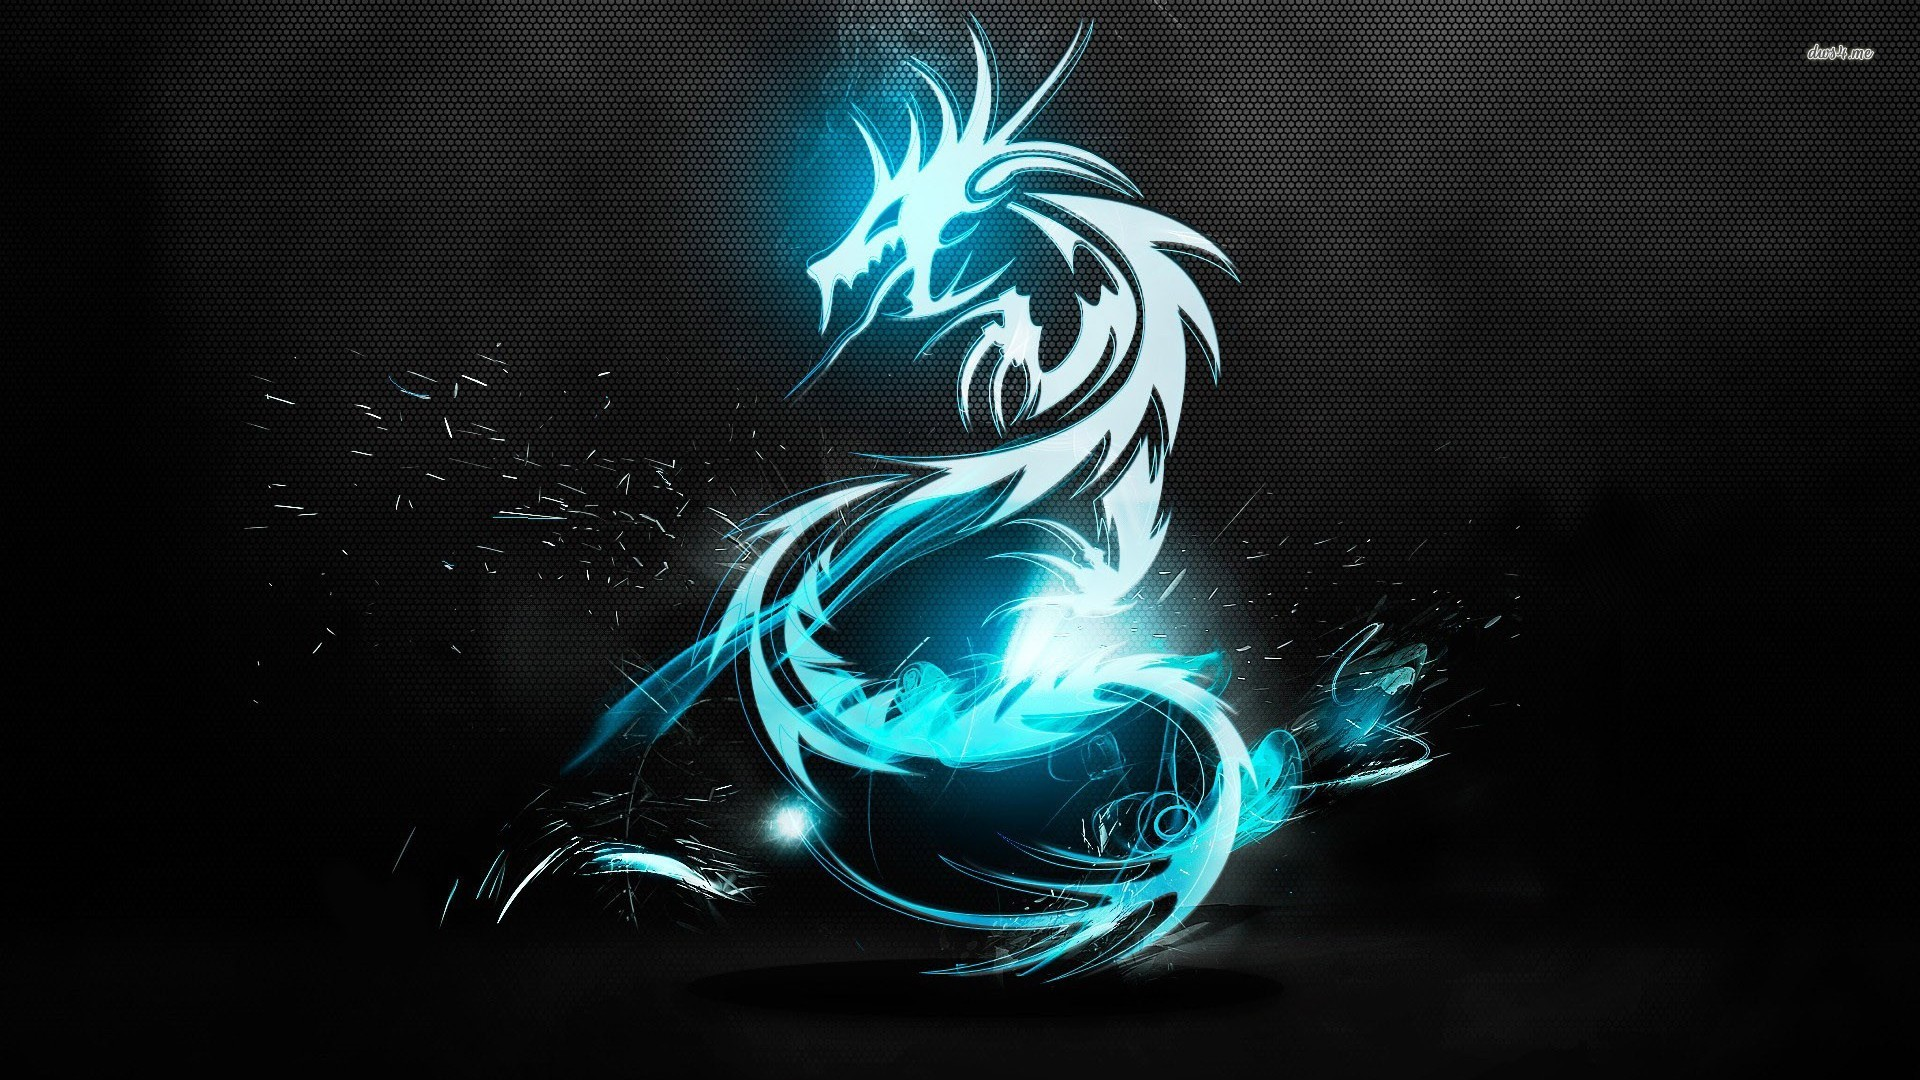 cool backgrounds of dragons - sf wallpaper